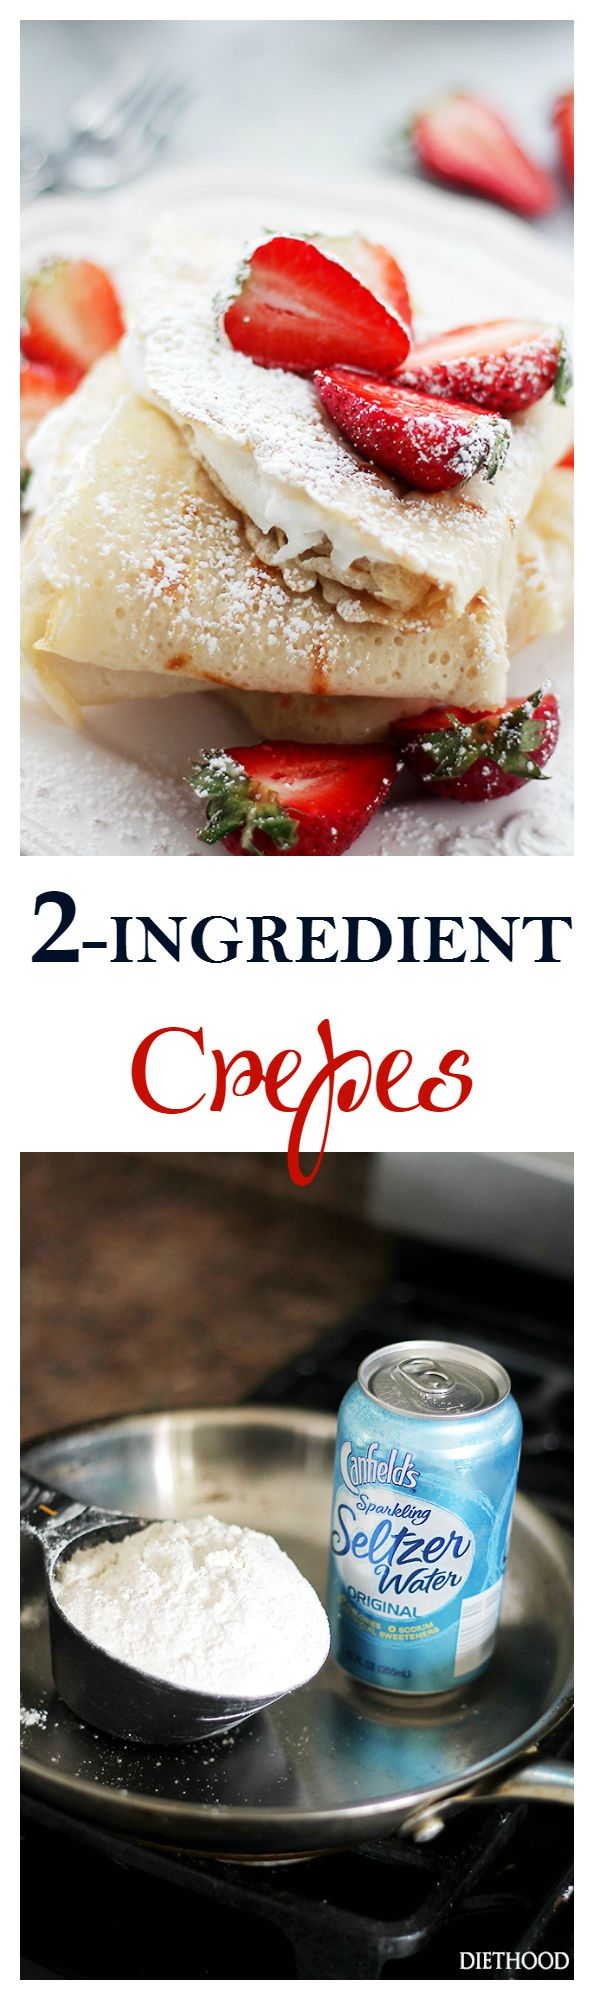 2-Ingredient Crepes {Macedonian-Style Crepes} - Fluffy, light and delicate Crepes made with just 2 ingredients, including all-purpose flour and carbonated water. Dairy-Free, Egg-Free, but definitely NOT taste-free! Get the recipe on diethood.com